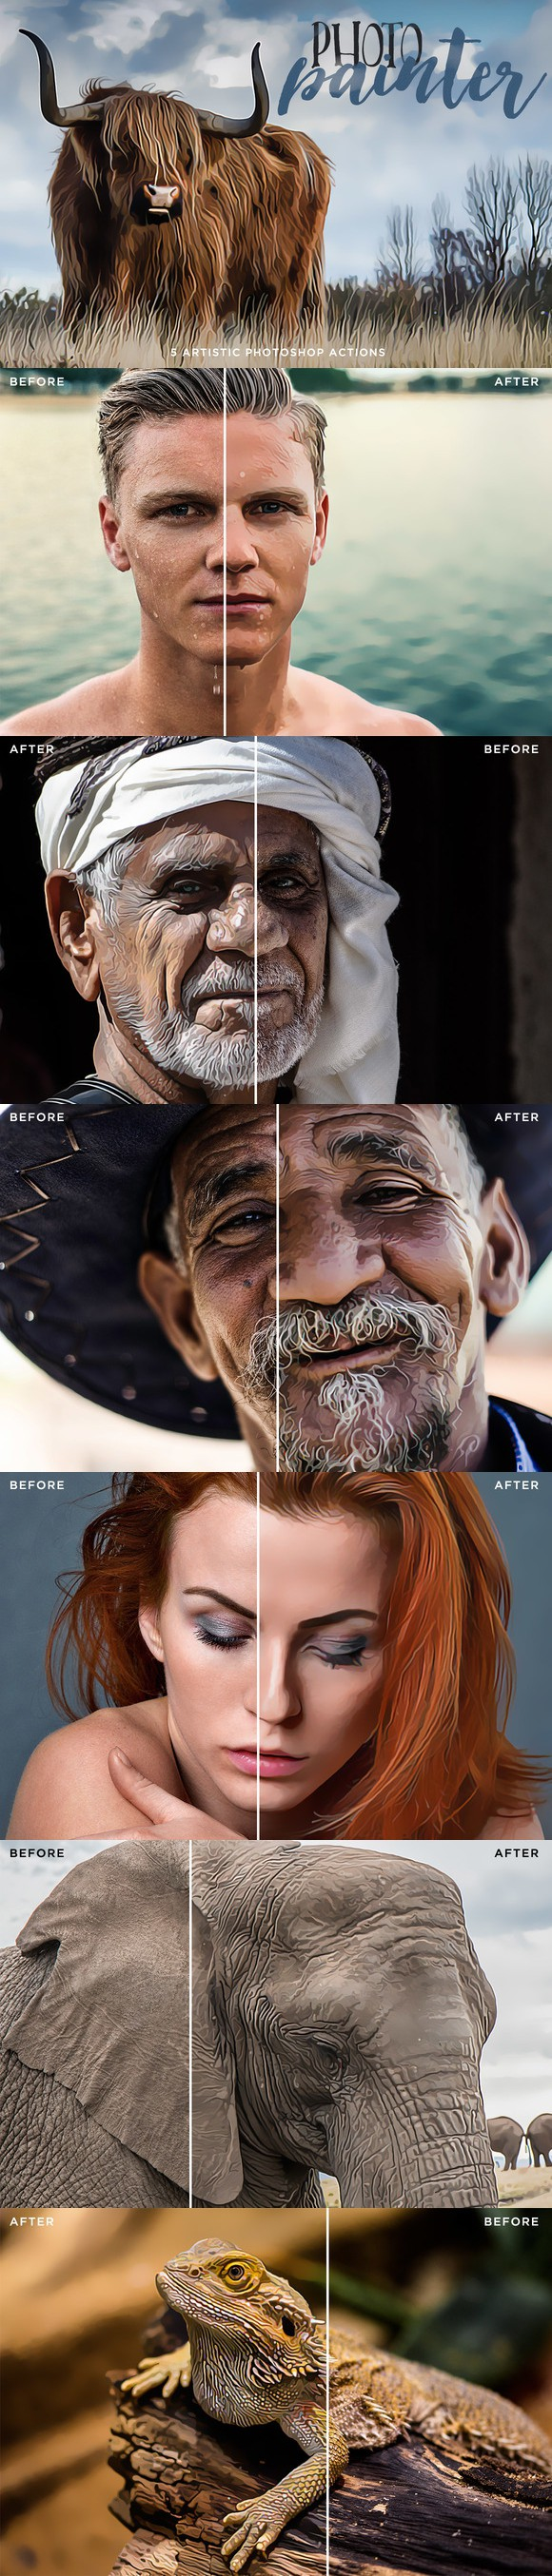 Photo Painter Photoshop Actions 1. Actions. $7.00